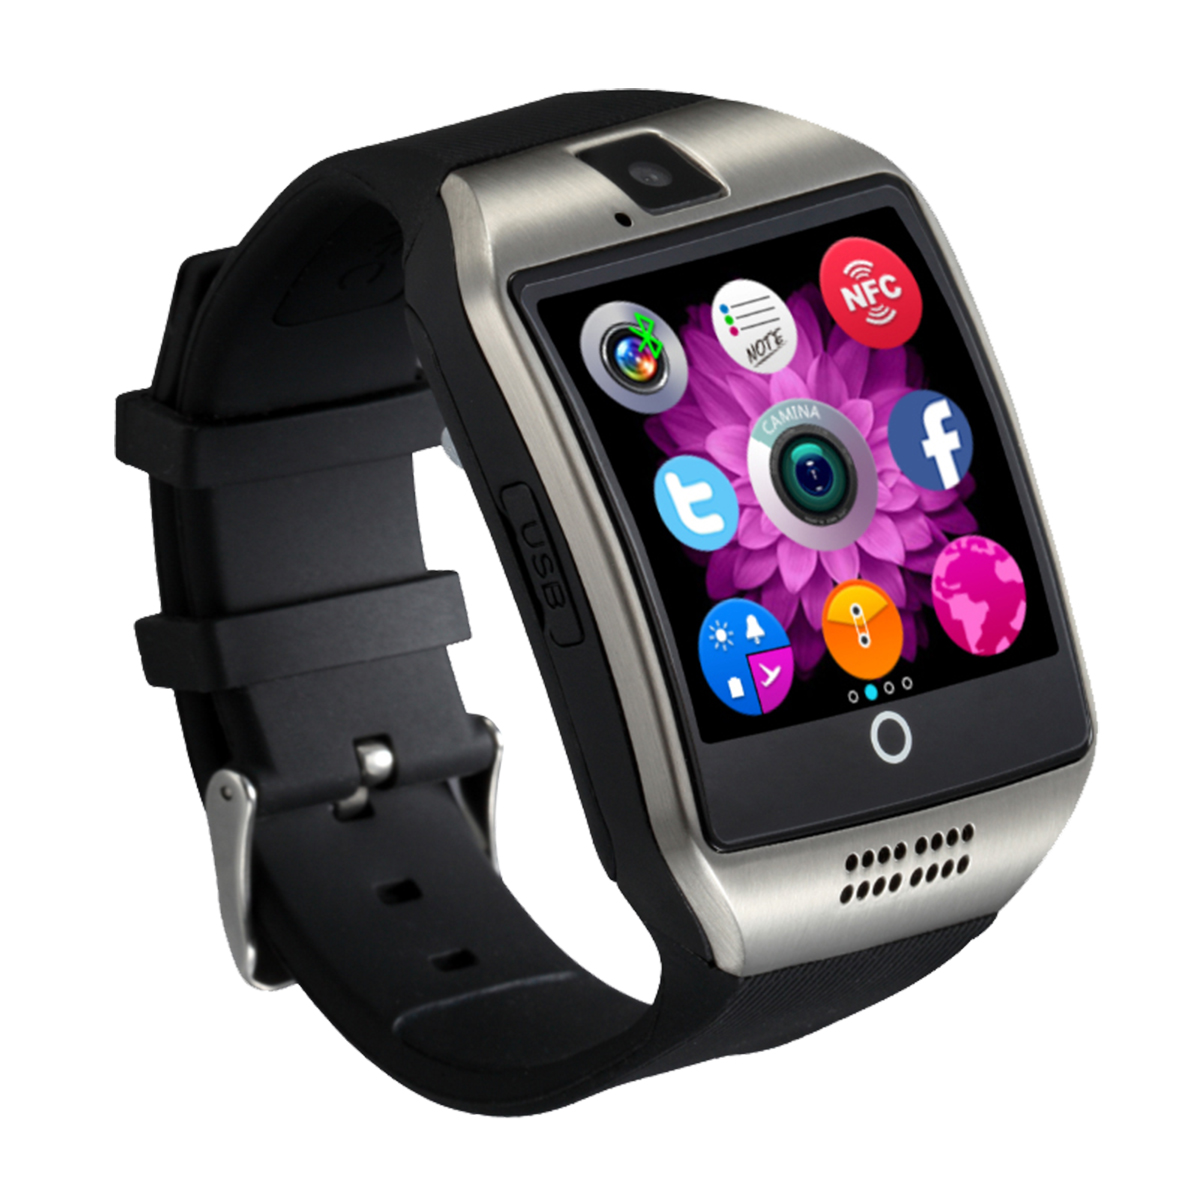 top 10 largest htc watch brands and get free shipping - 637i224a